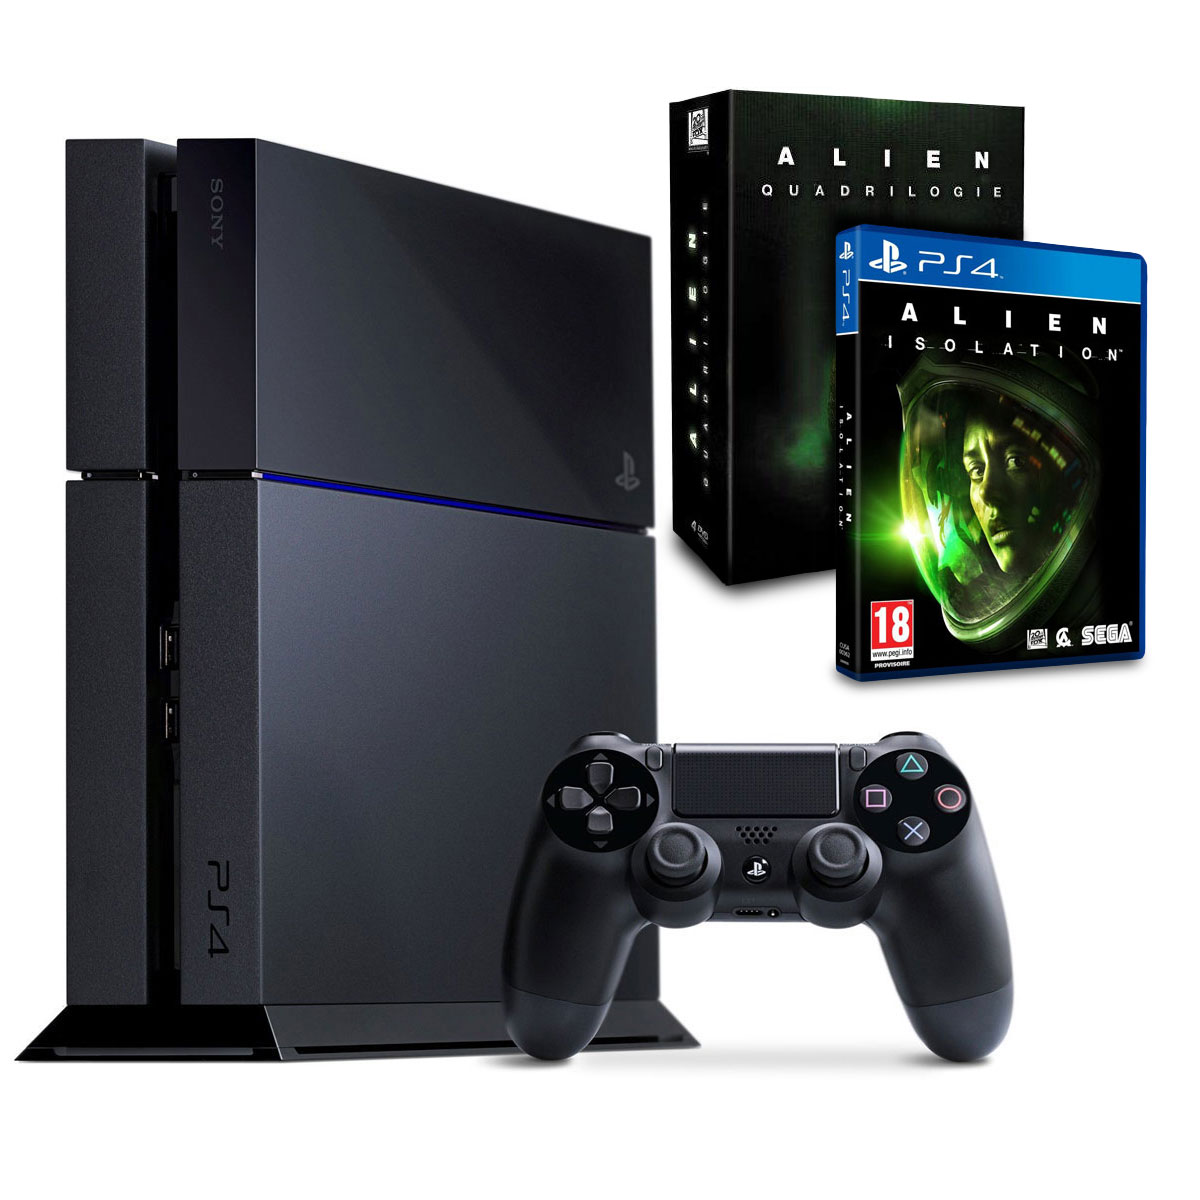 sony playstation 4 alien saga 500 go console ps4 sony. Black Bedroom Furniture Sets. Home Design Ideas